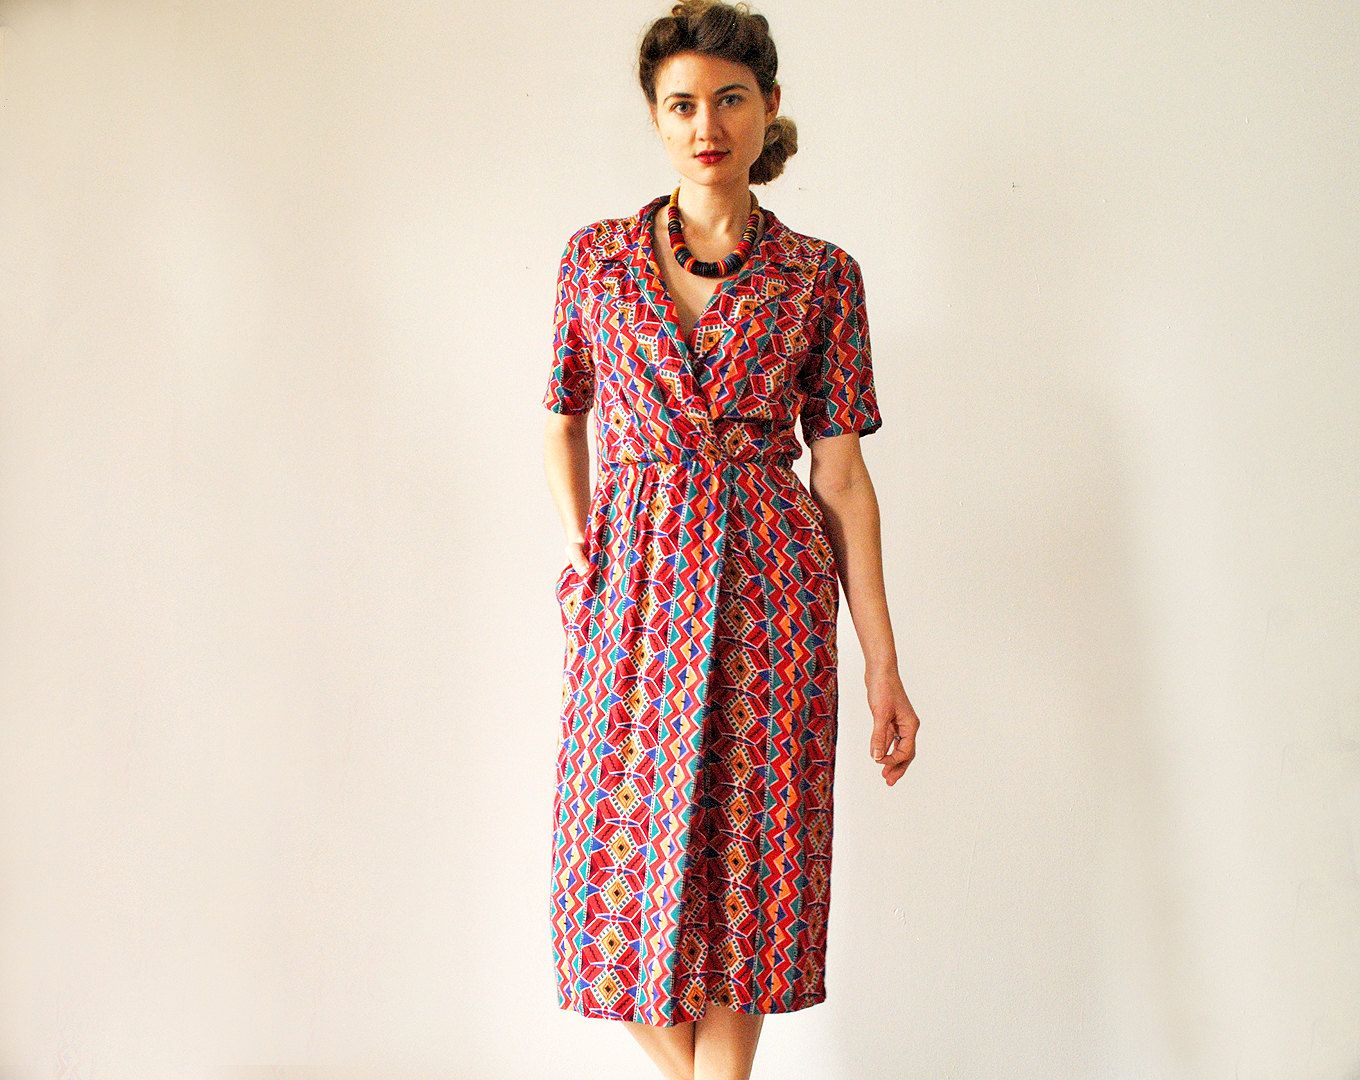 Vintage short sleeve dress red patterned extra small via